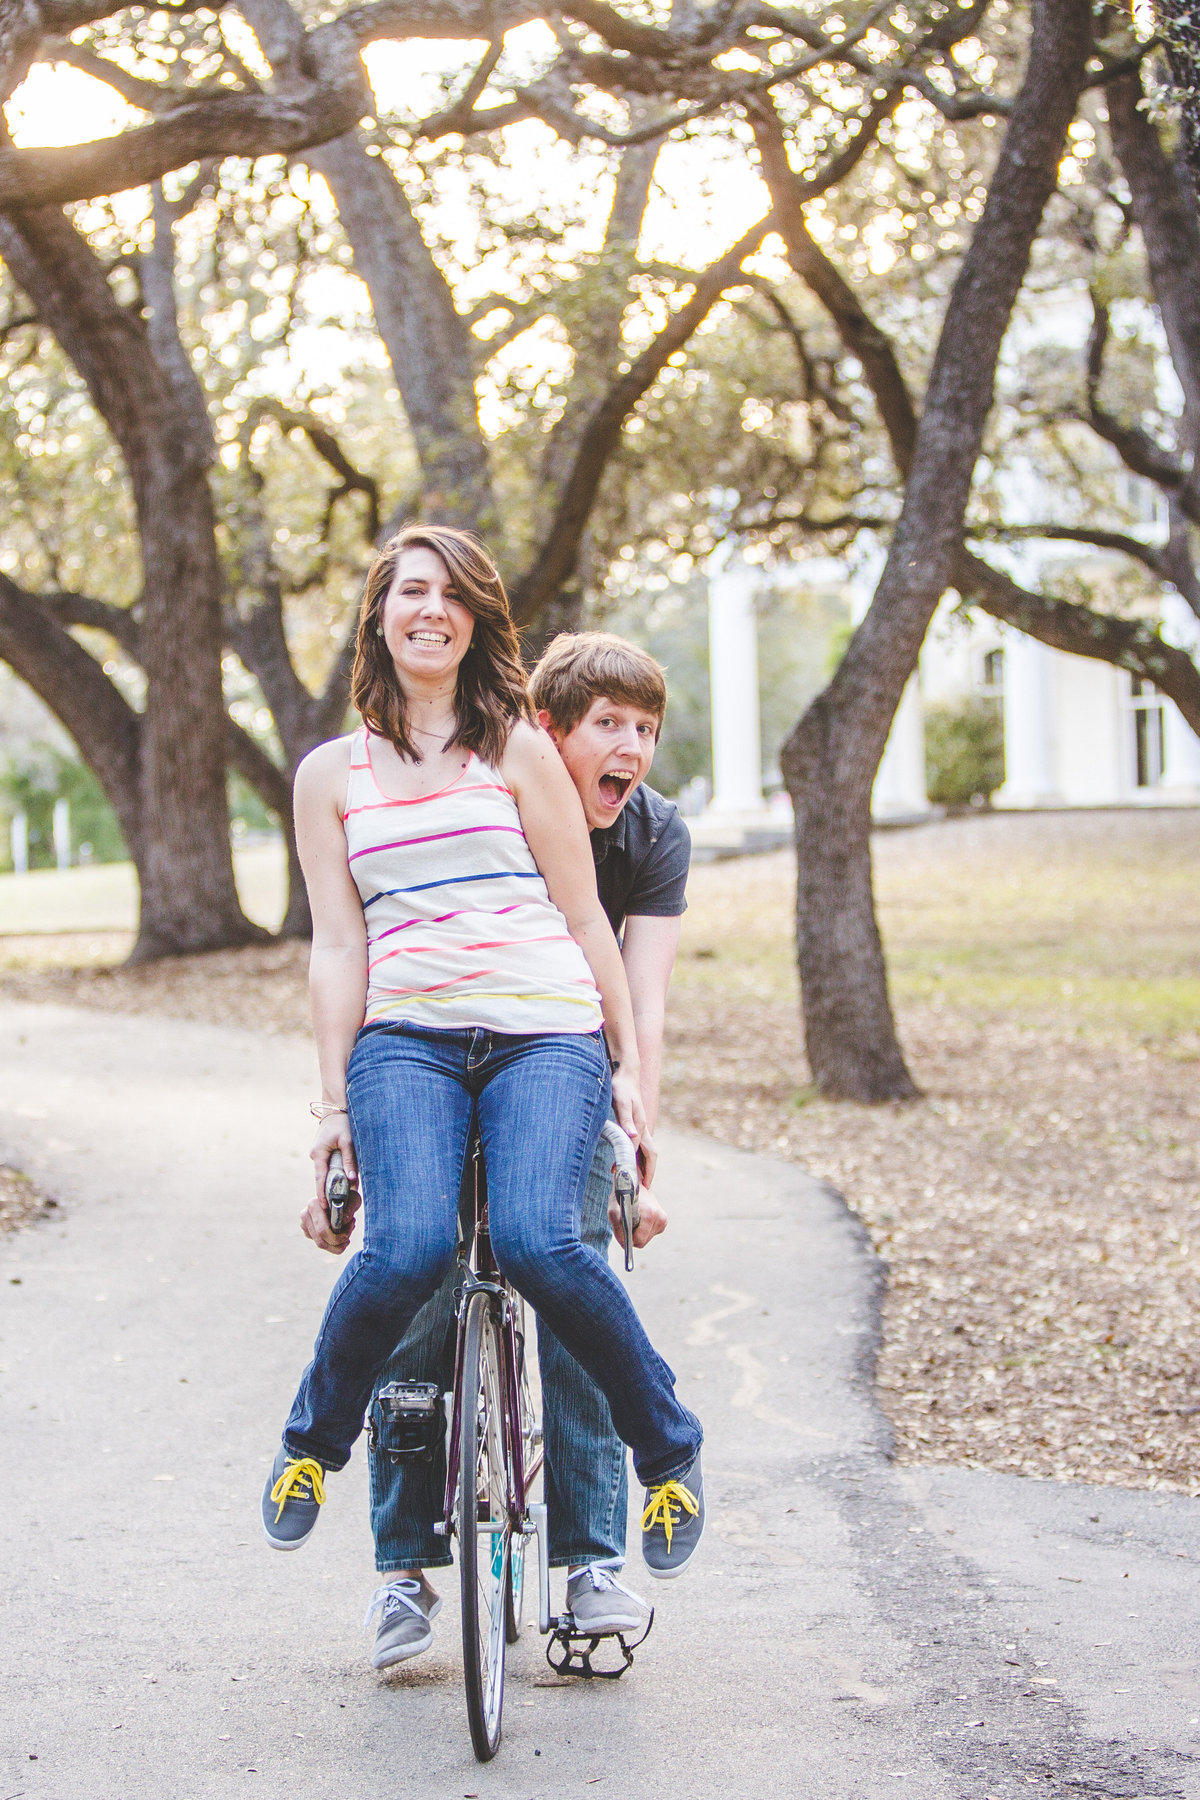 Engaged couple riding one bike together. Fiancée is on the handlebars and fiancé is pedaling at Denman Estate Park in San Antonio.